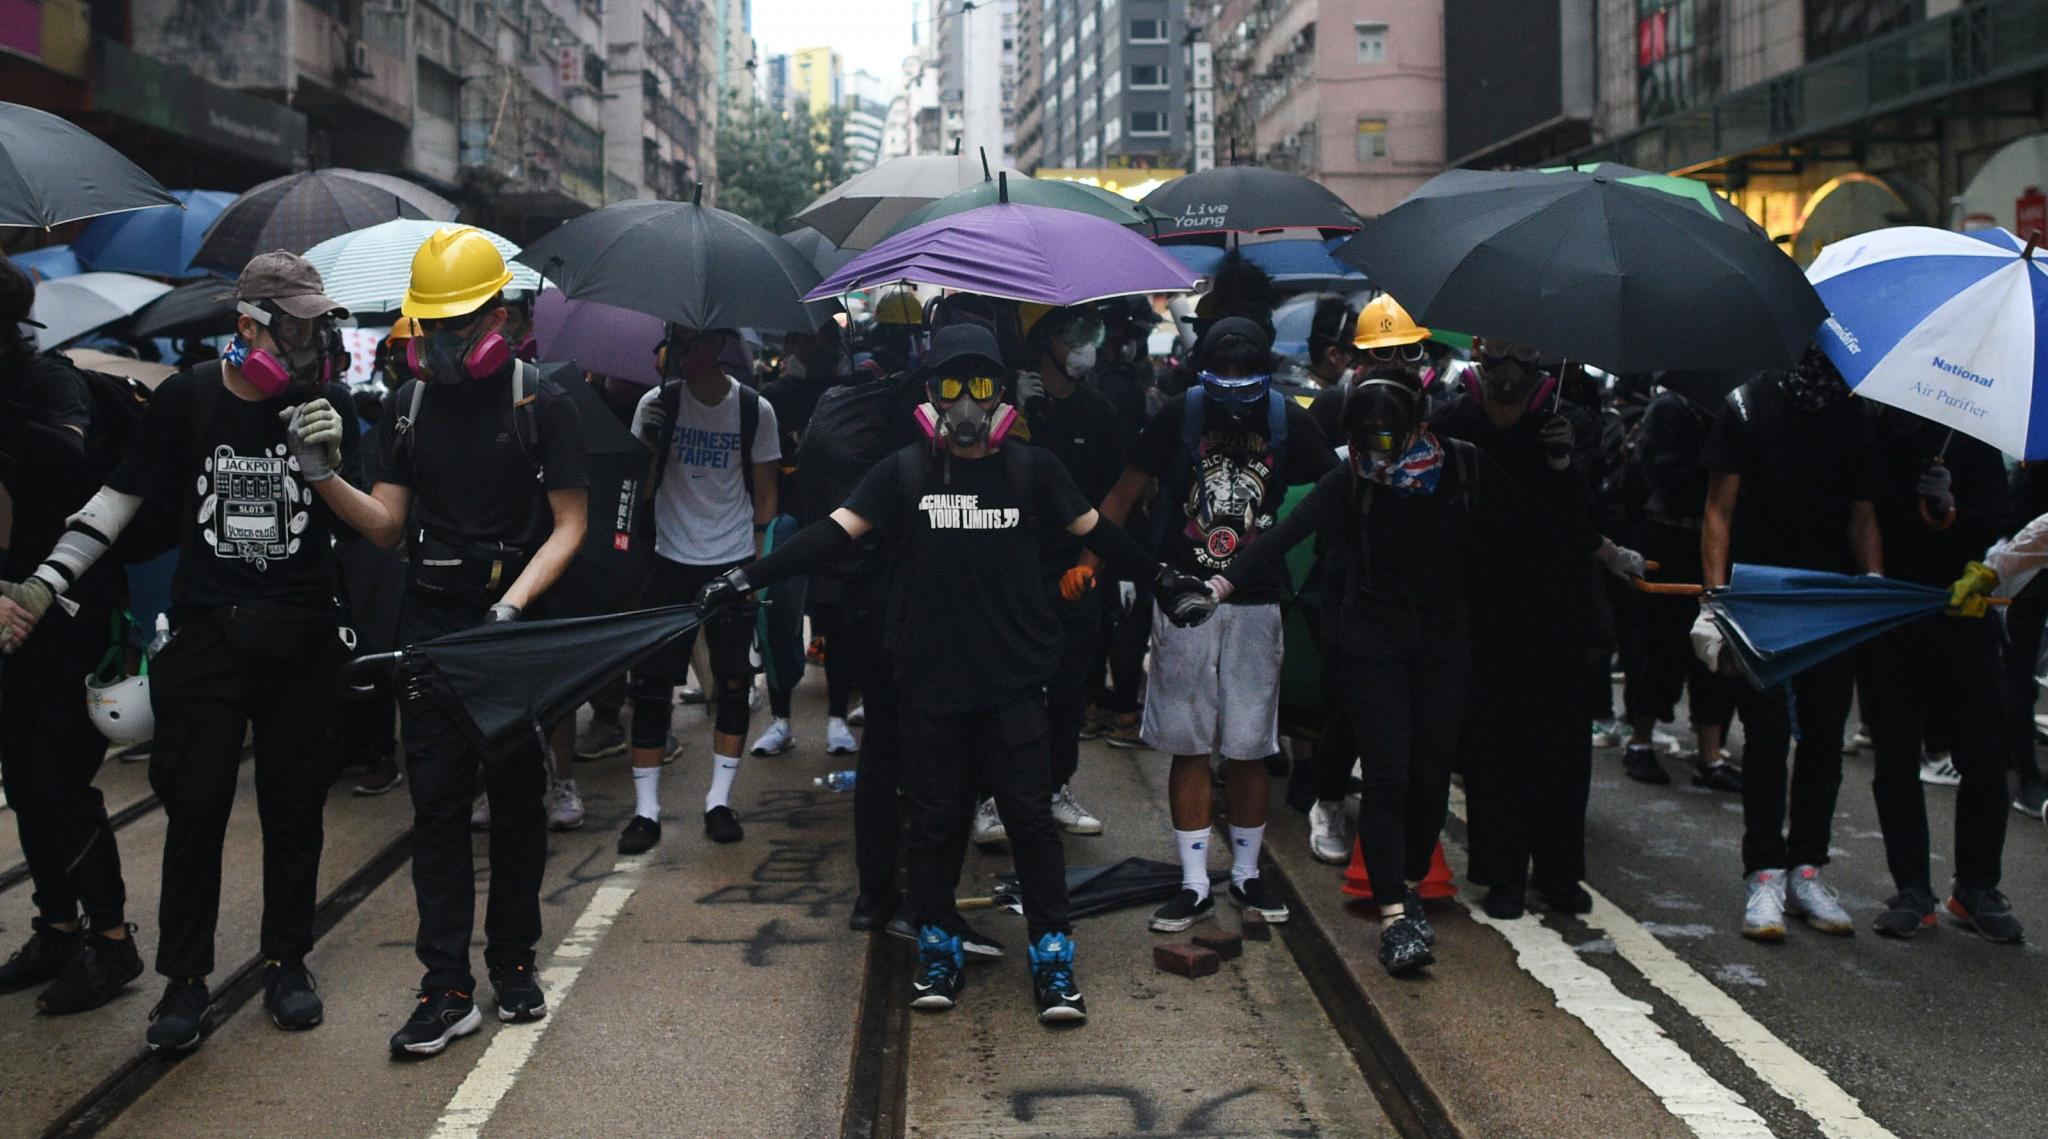 Hong Kong Protests: Fresh Violence as Court Rejects Appeal Seeking Suspension of Mask Ban